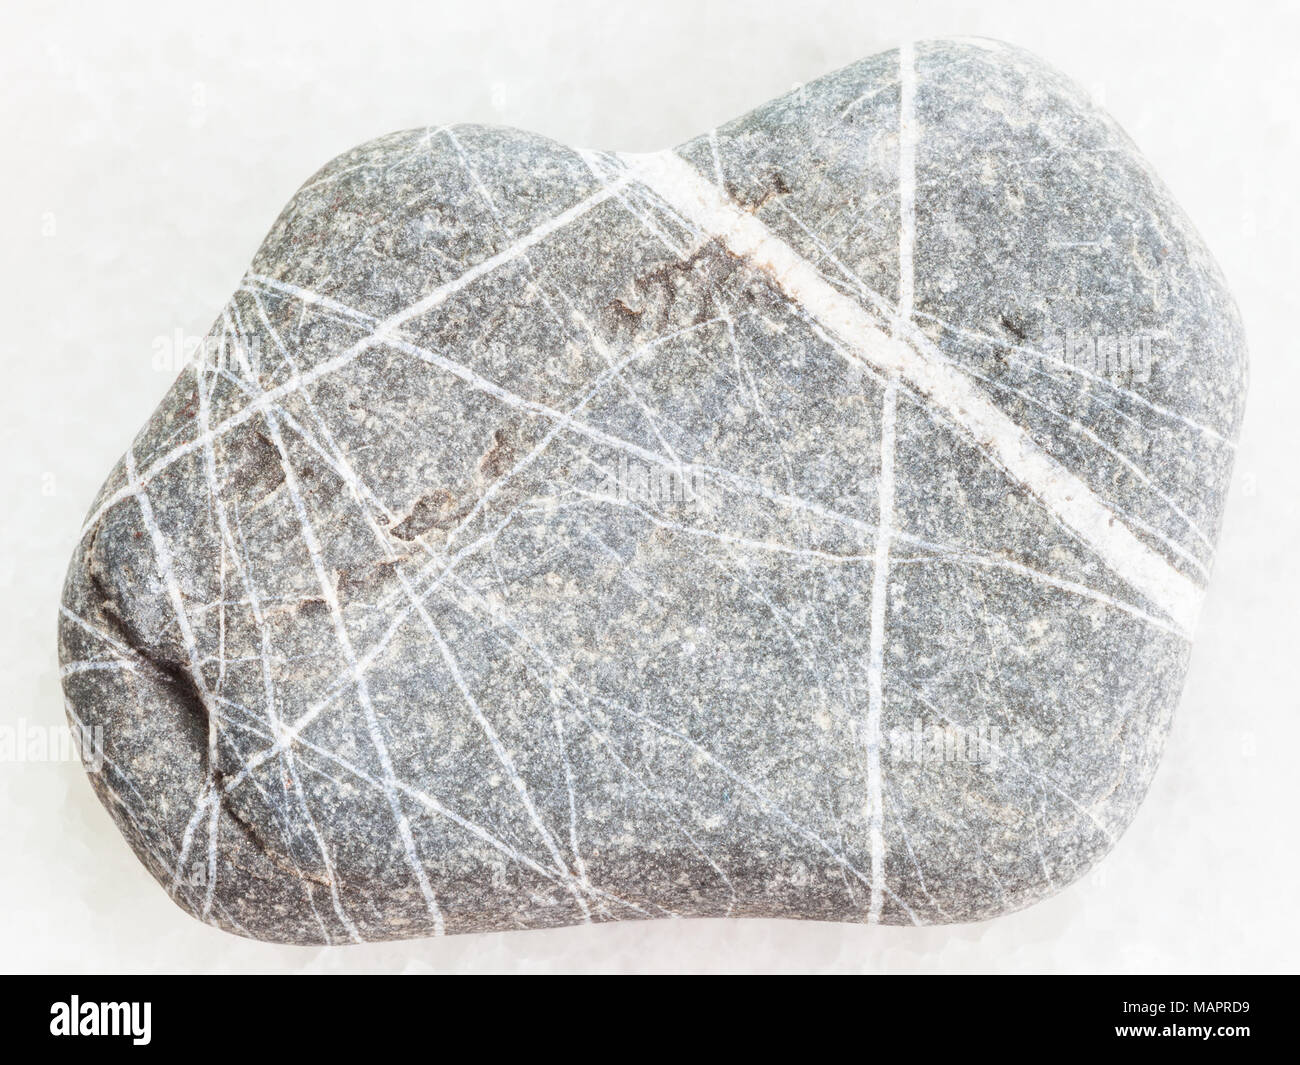 macro shooting of natural mineral rock specimen - Greywacke sandstone on white marble background Stock Photo